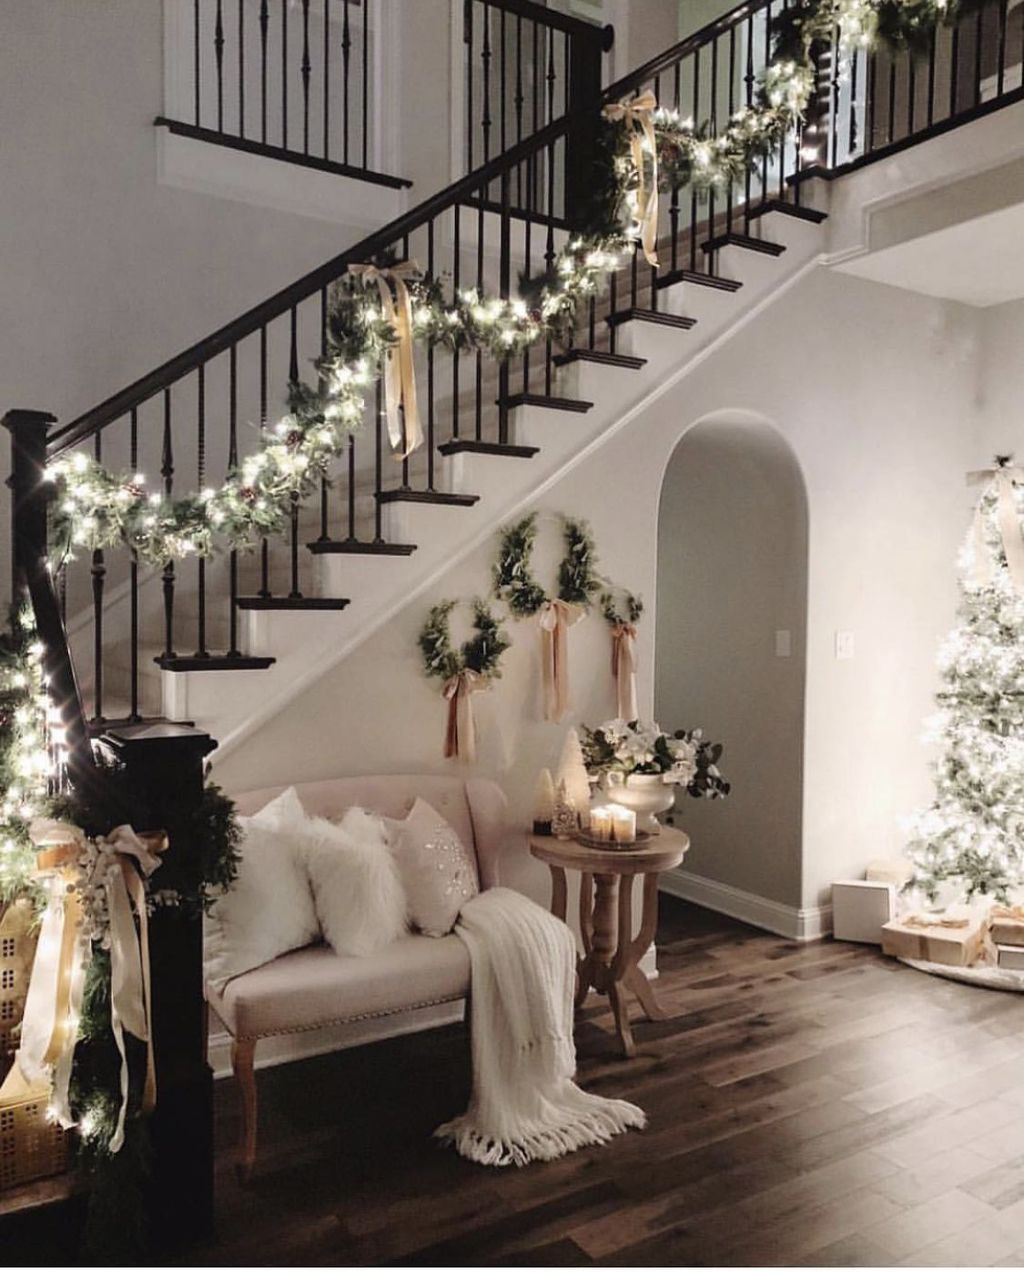 Beautiful Christmas Interior Design Ideas You Never Seen Before 05